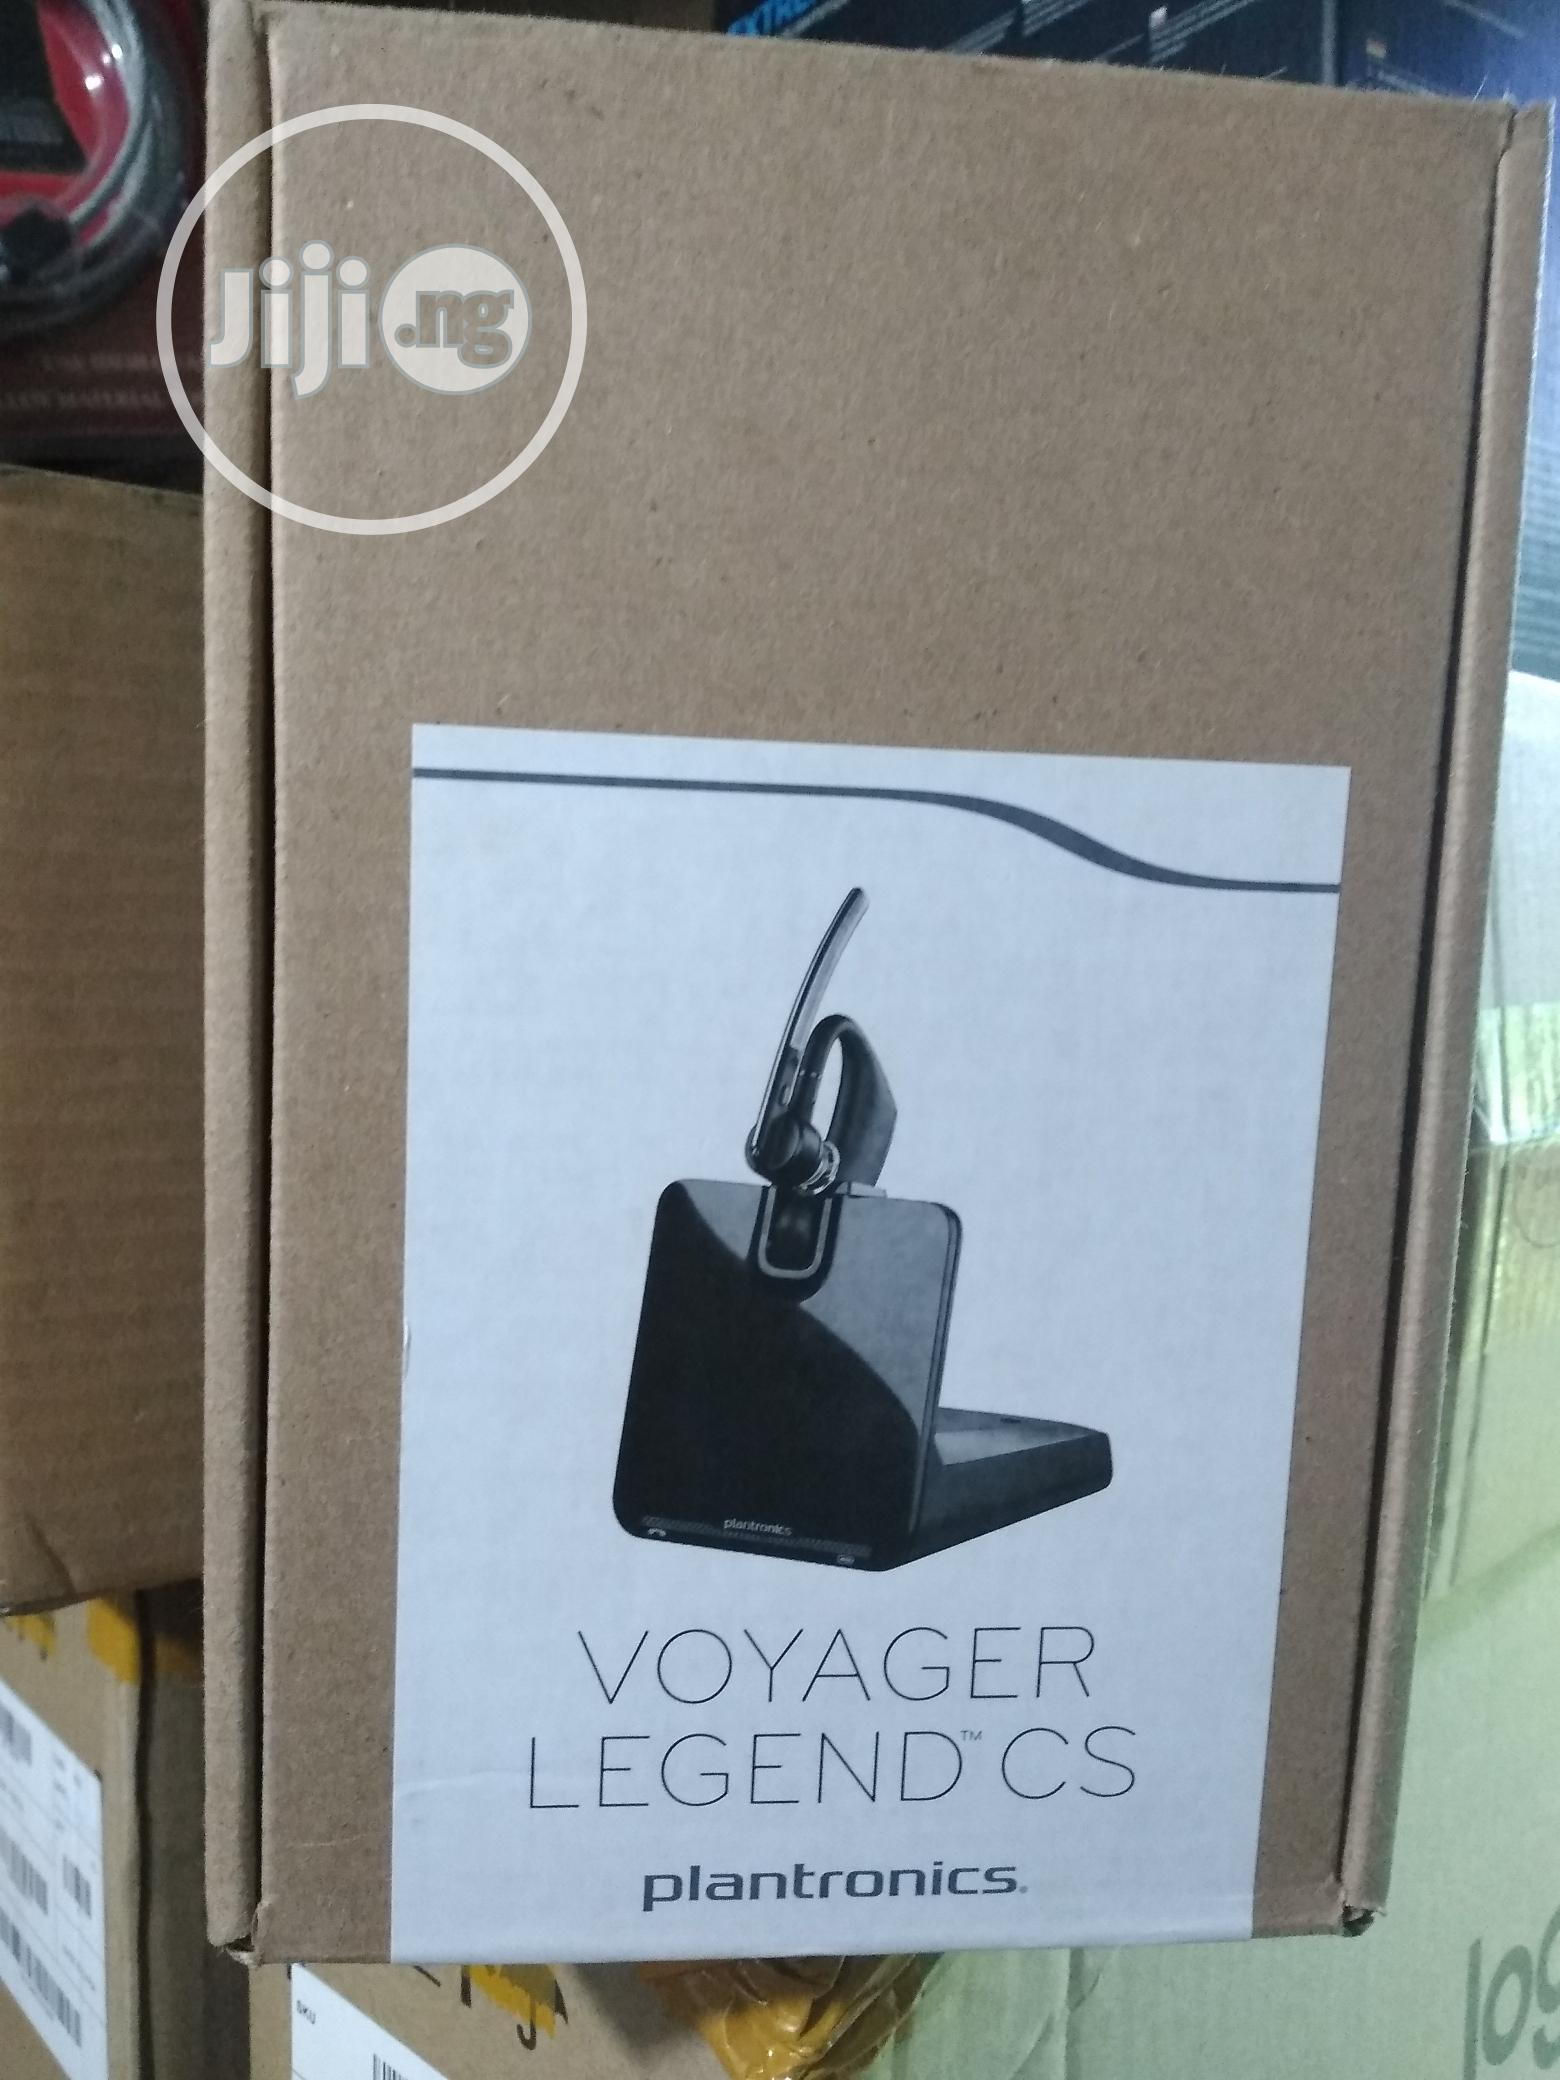 Voyager Legend Cs Plantronics | Accessories for Mobile Phones & Tablets for sale in Ikeja, Lagos State, Nigeria